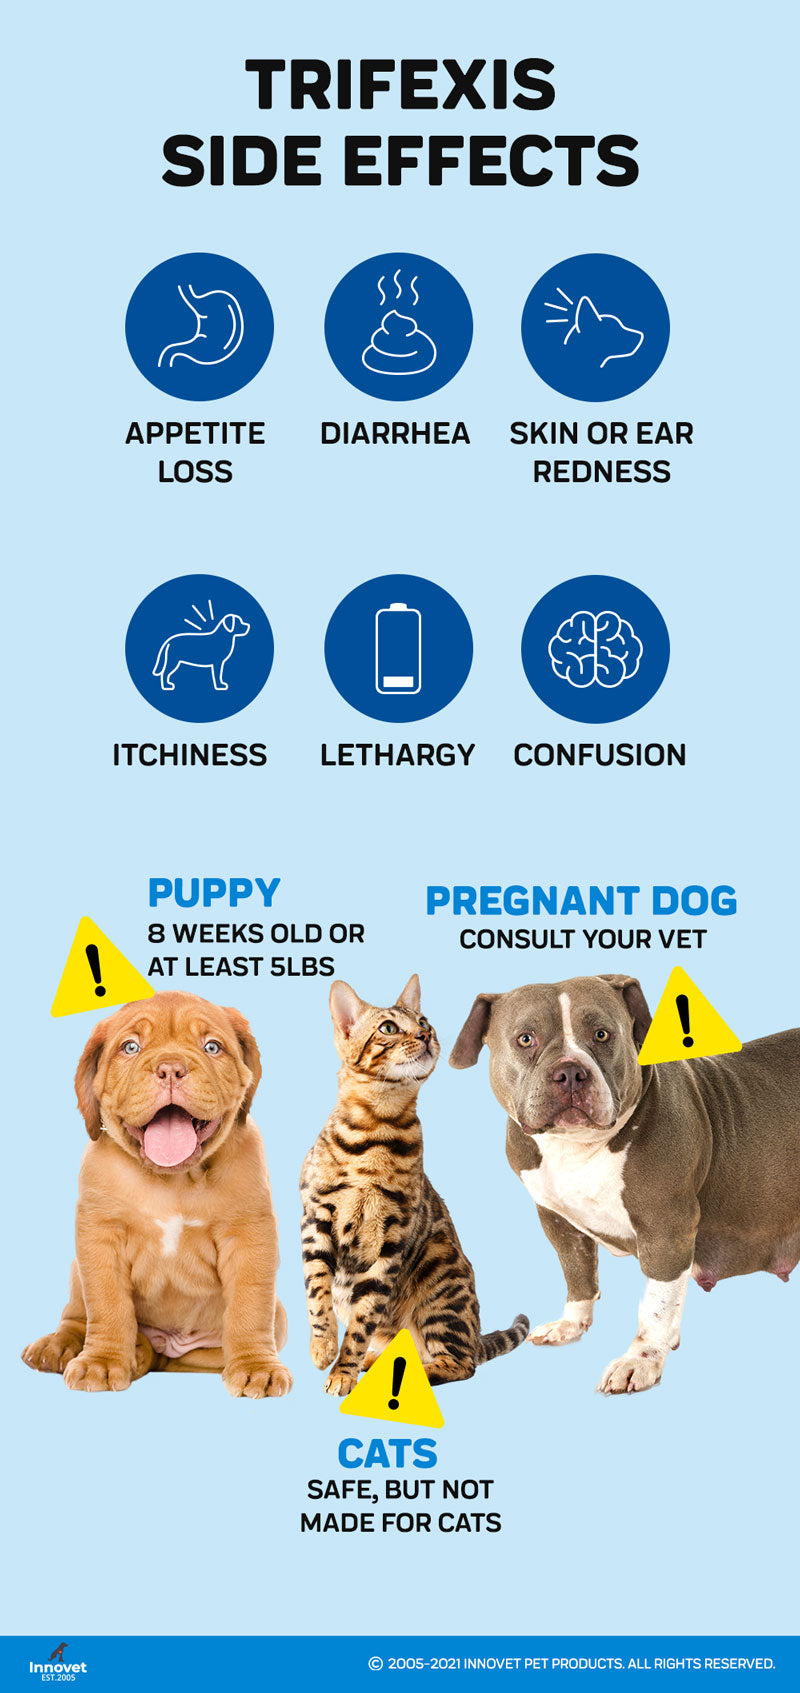 Side Effects of Trifexis for Dogs and Cats